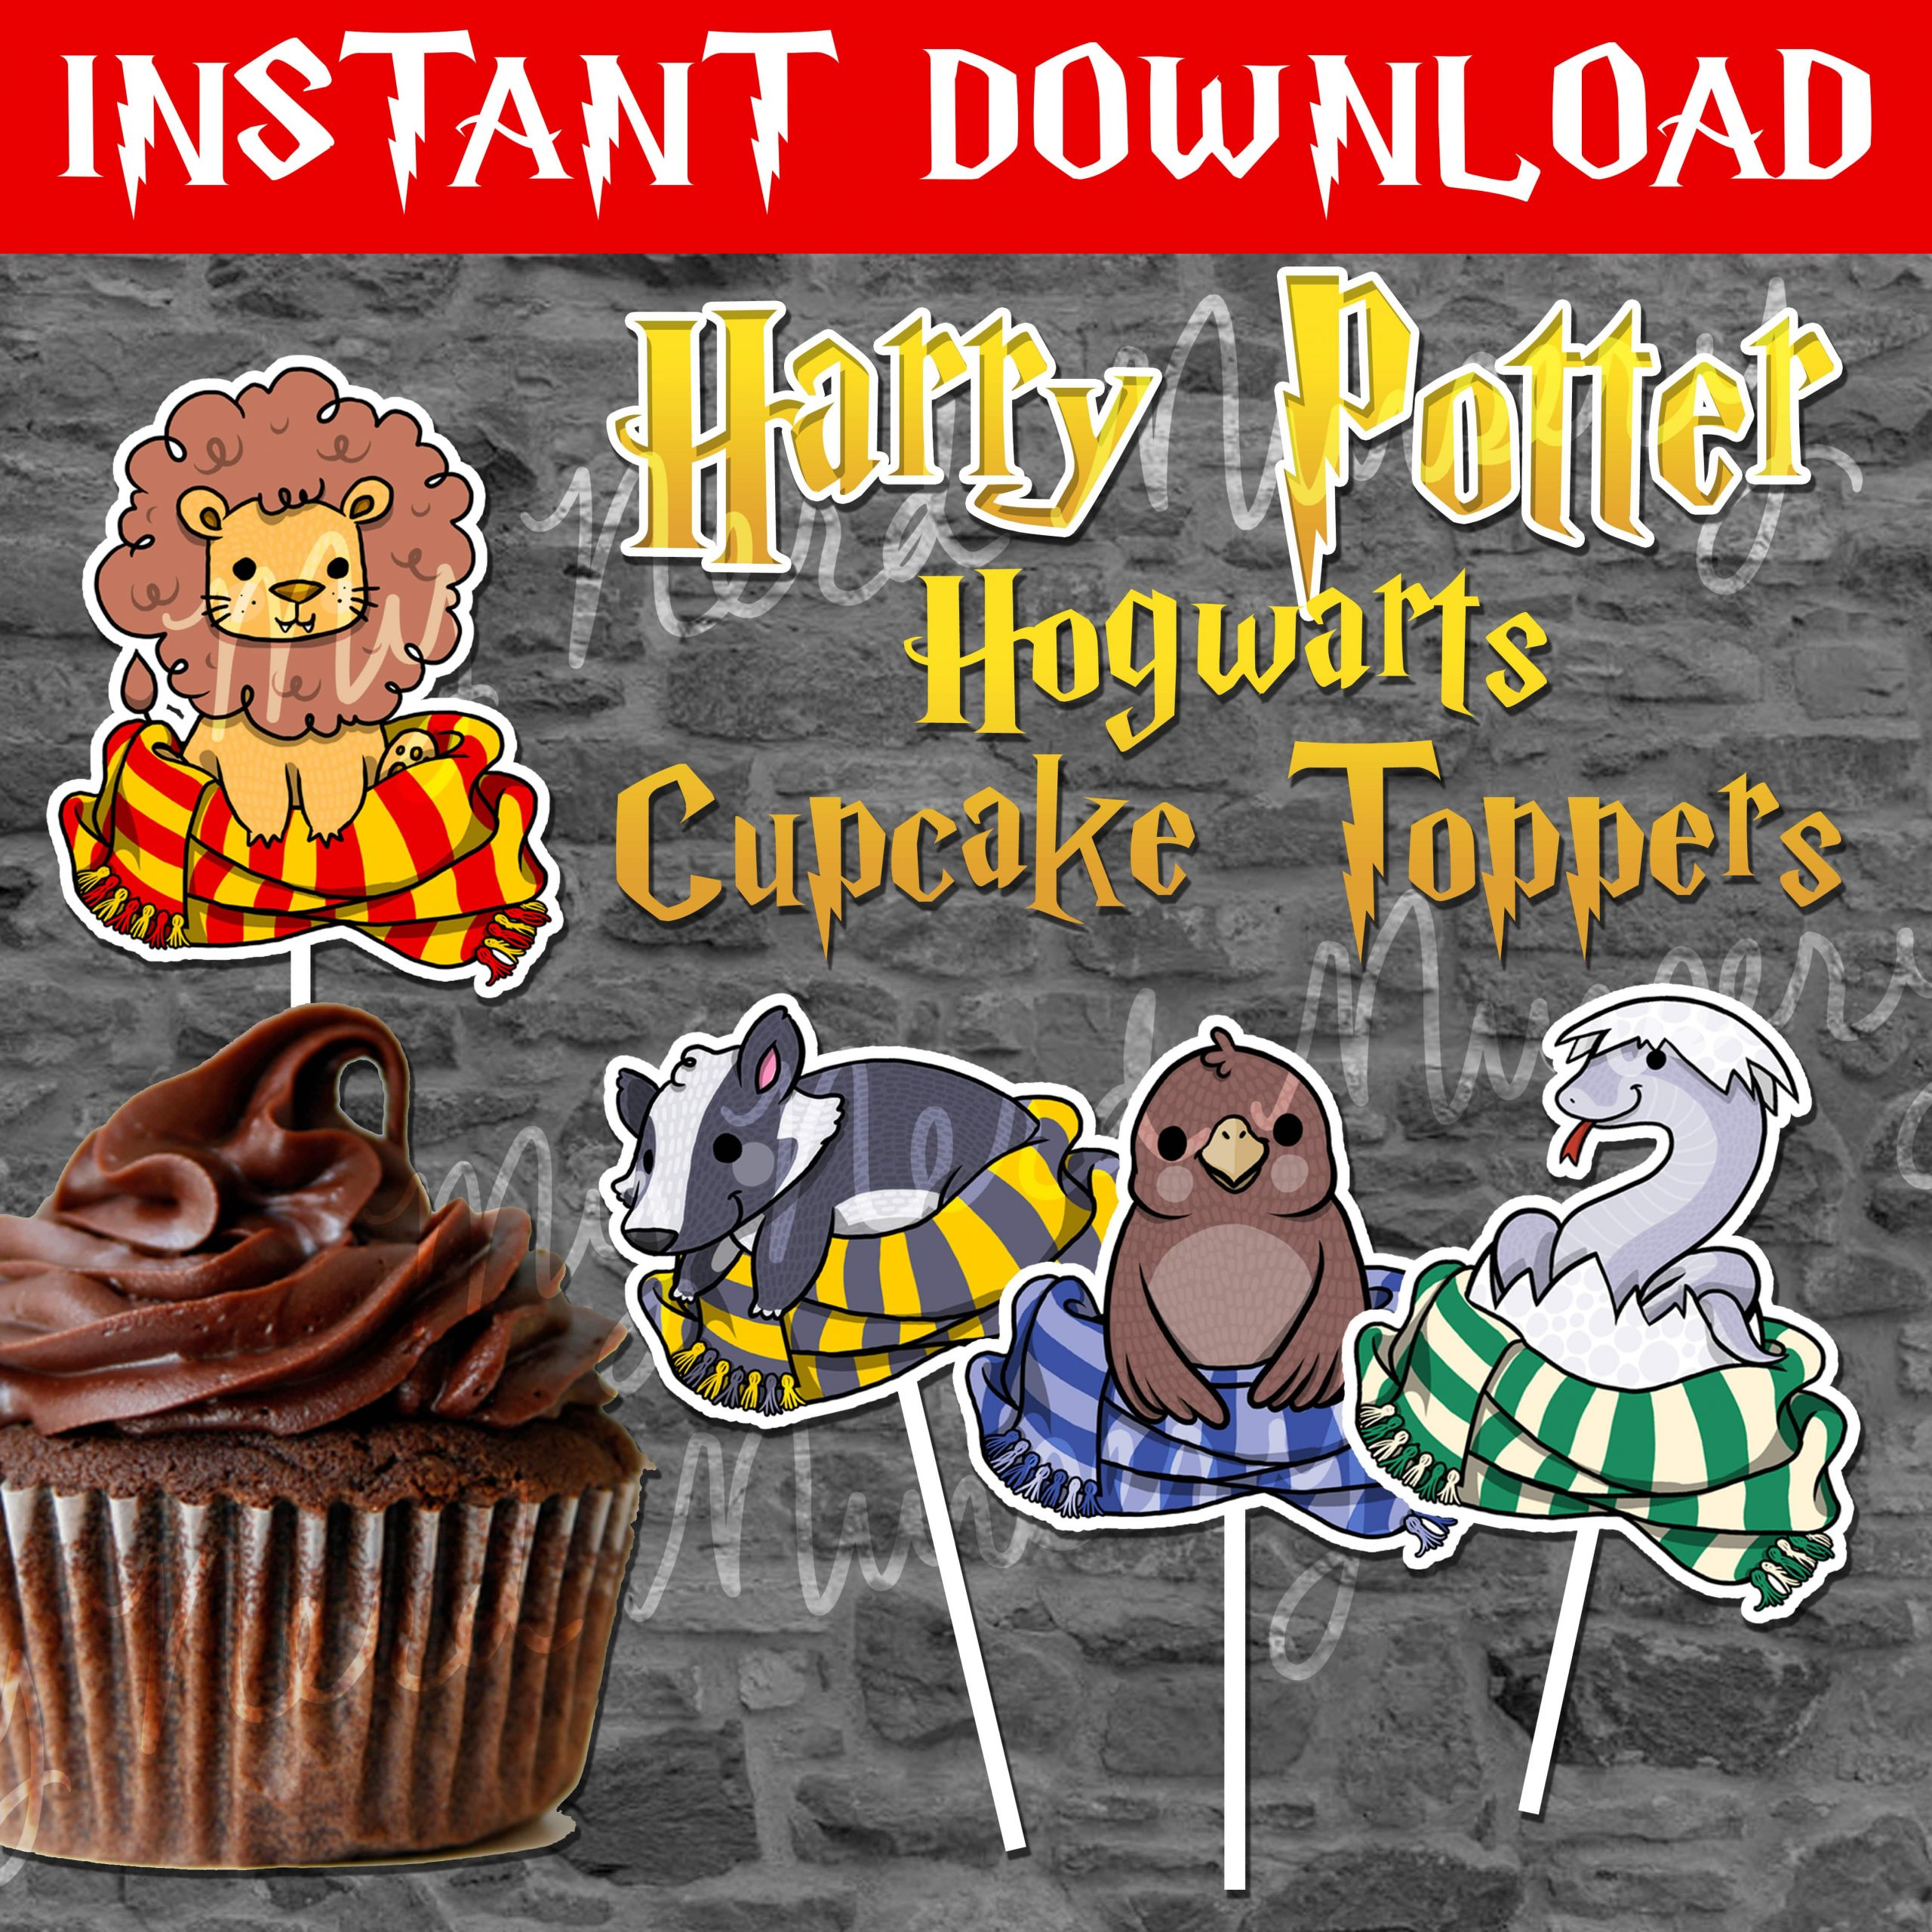 Harry Potter Party Hogwarts Cupcake Toppers